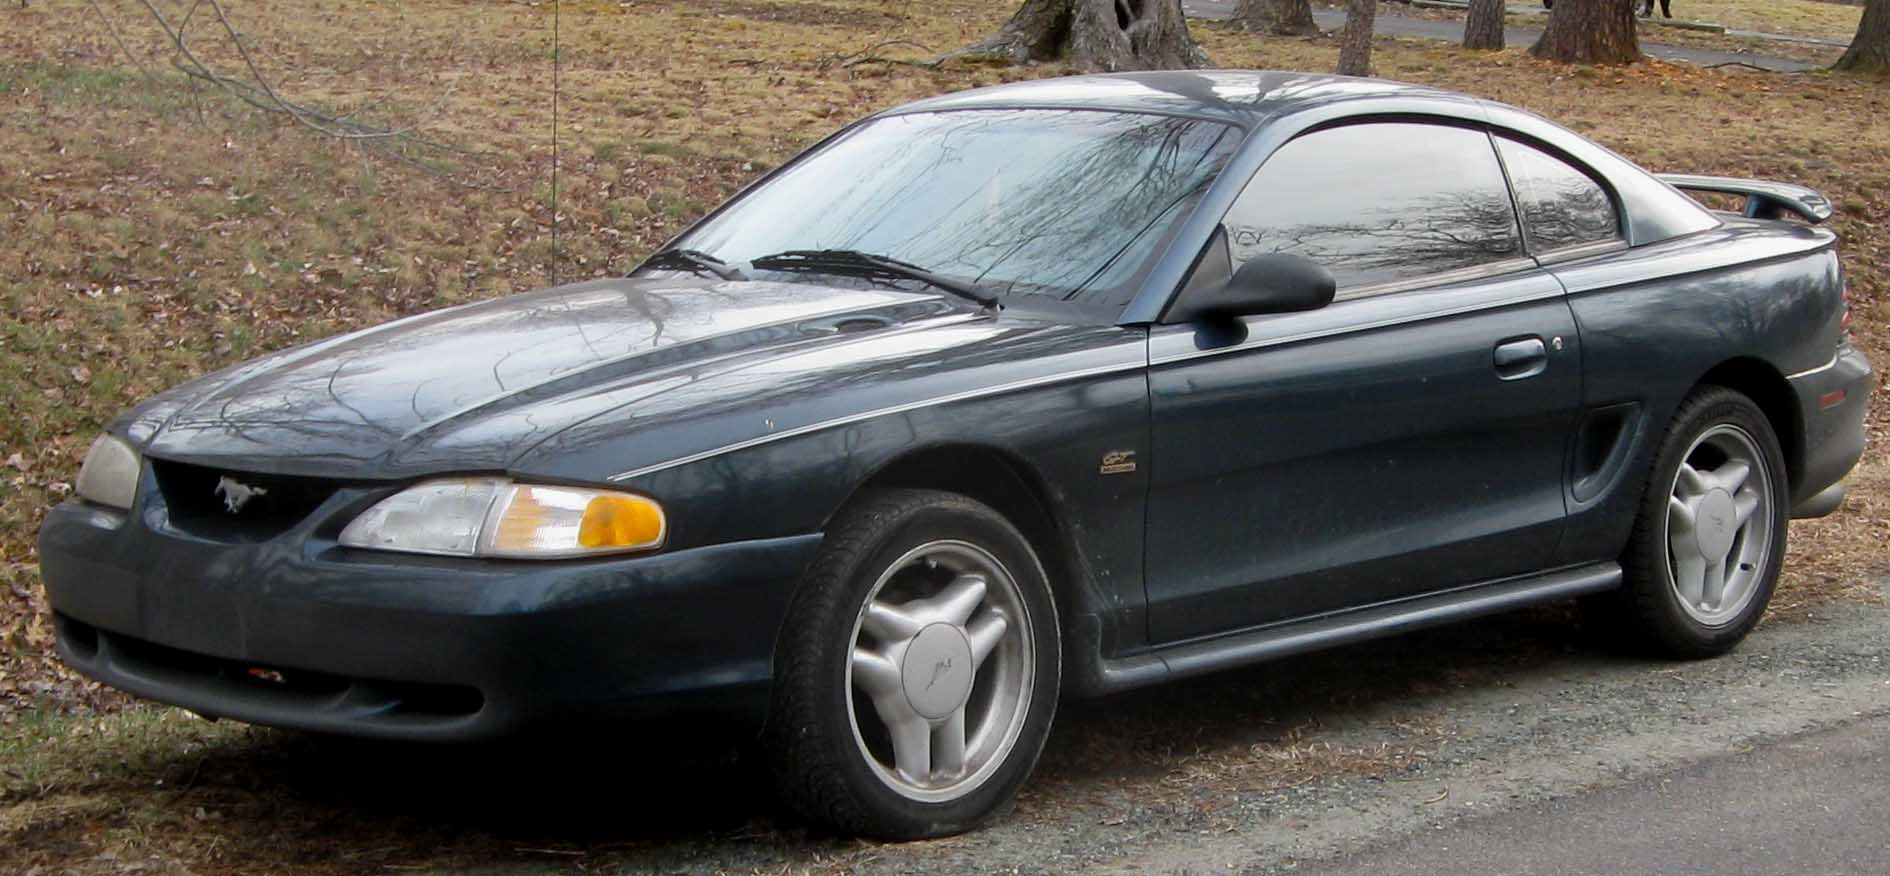 Ford 1998 ford mustang specs : 1998 Ford Mustang iv – pictures, information and specs - Auto ...